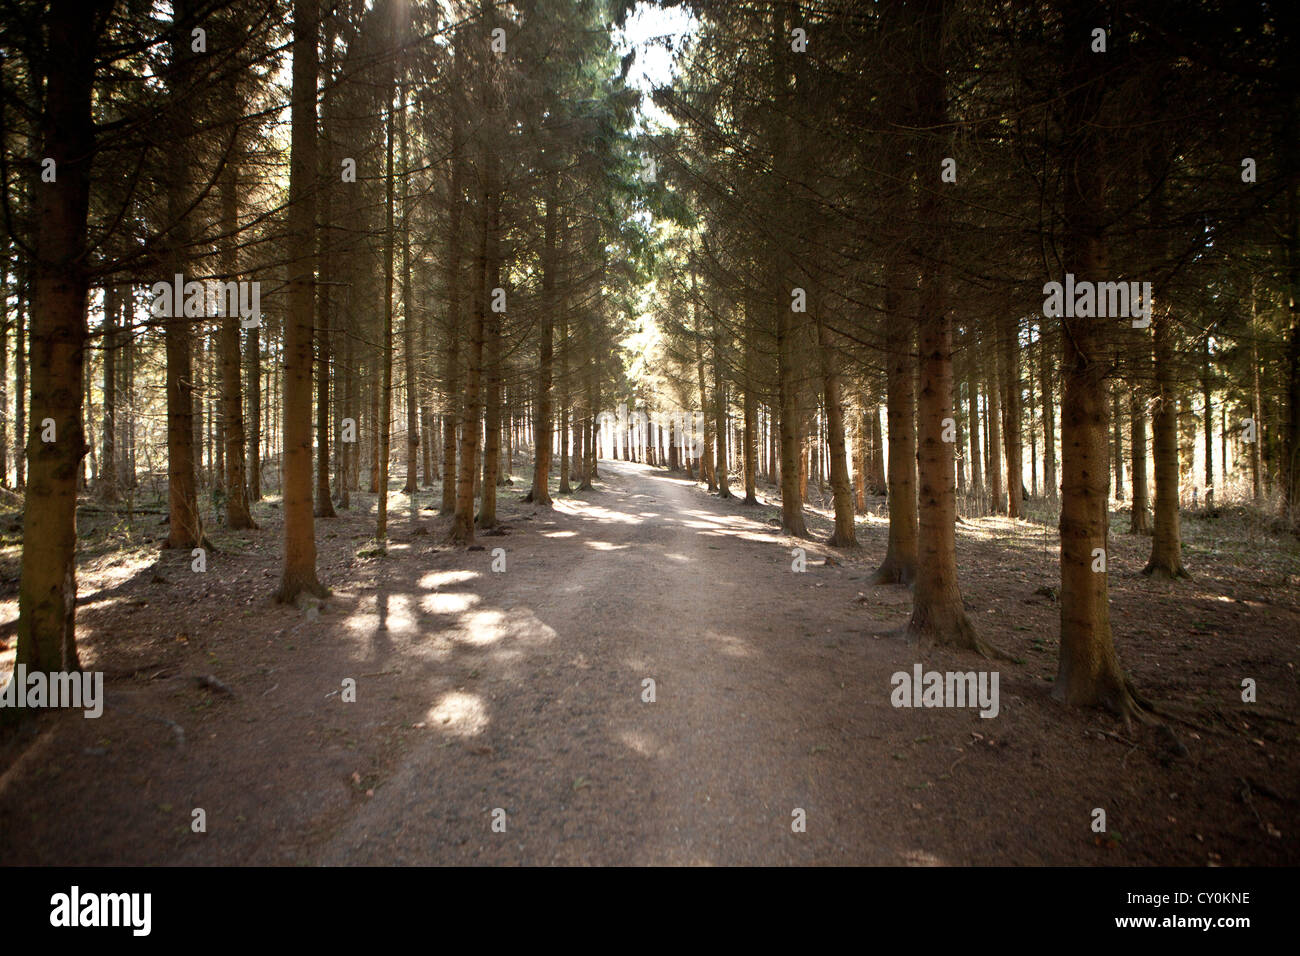 Amsterdam forest in spring - Stock Image